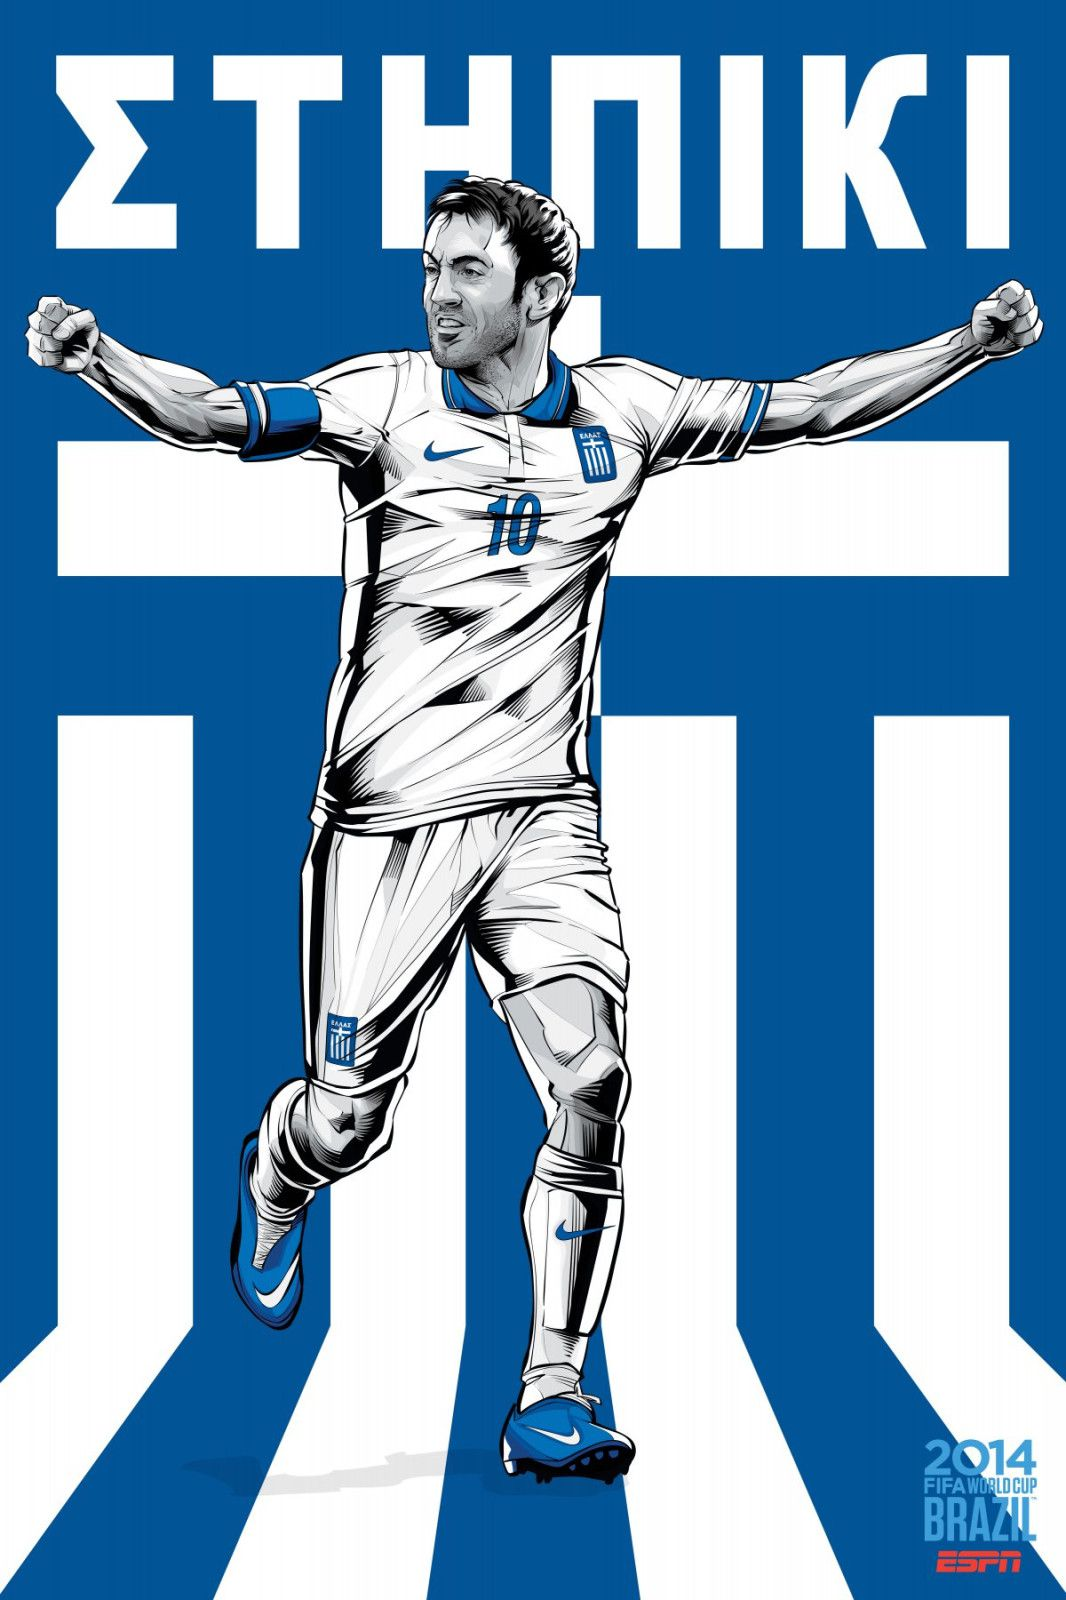 greece-maillot-coupe-du-monde-2014.jpg